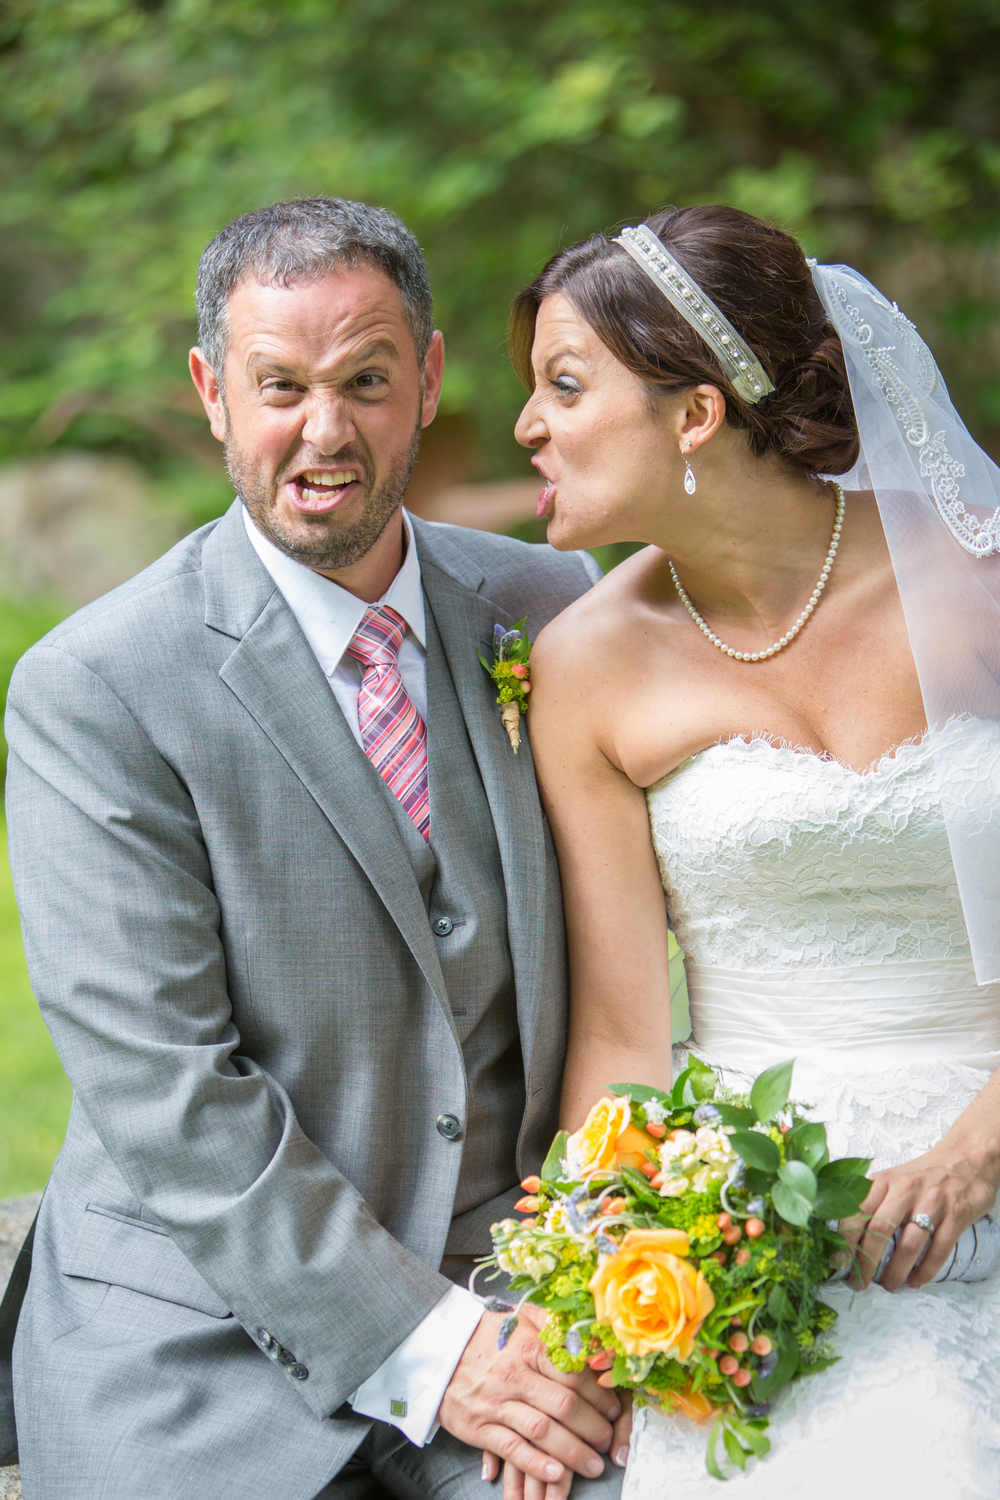 wedding funny faces bride groom .jpg